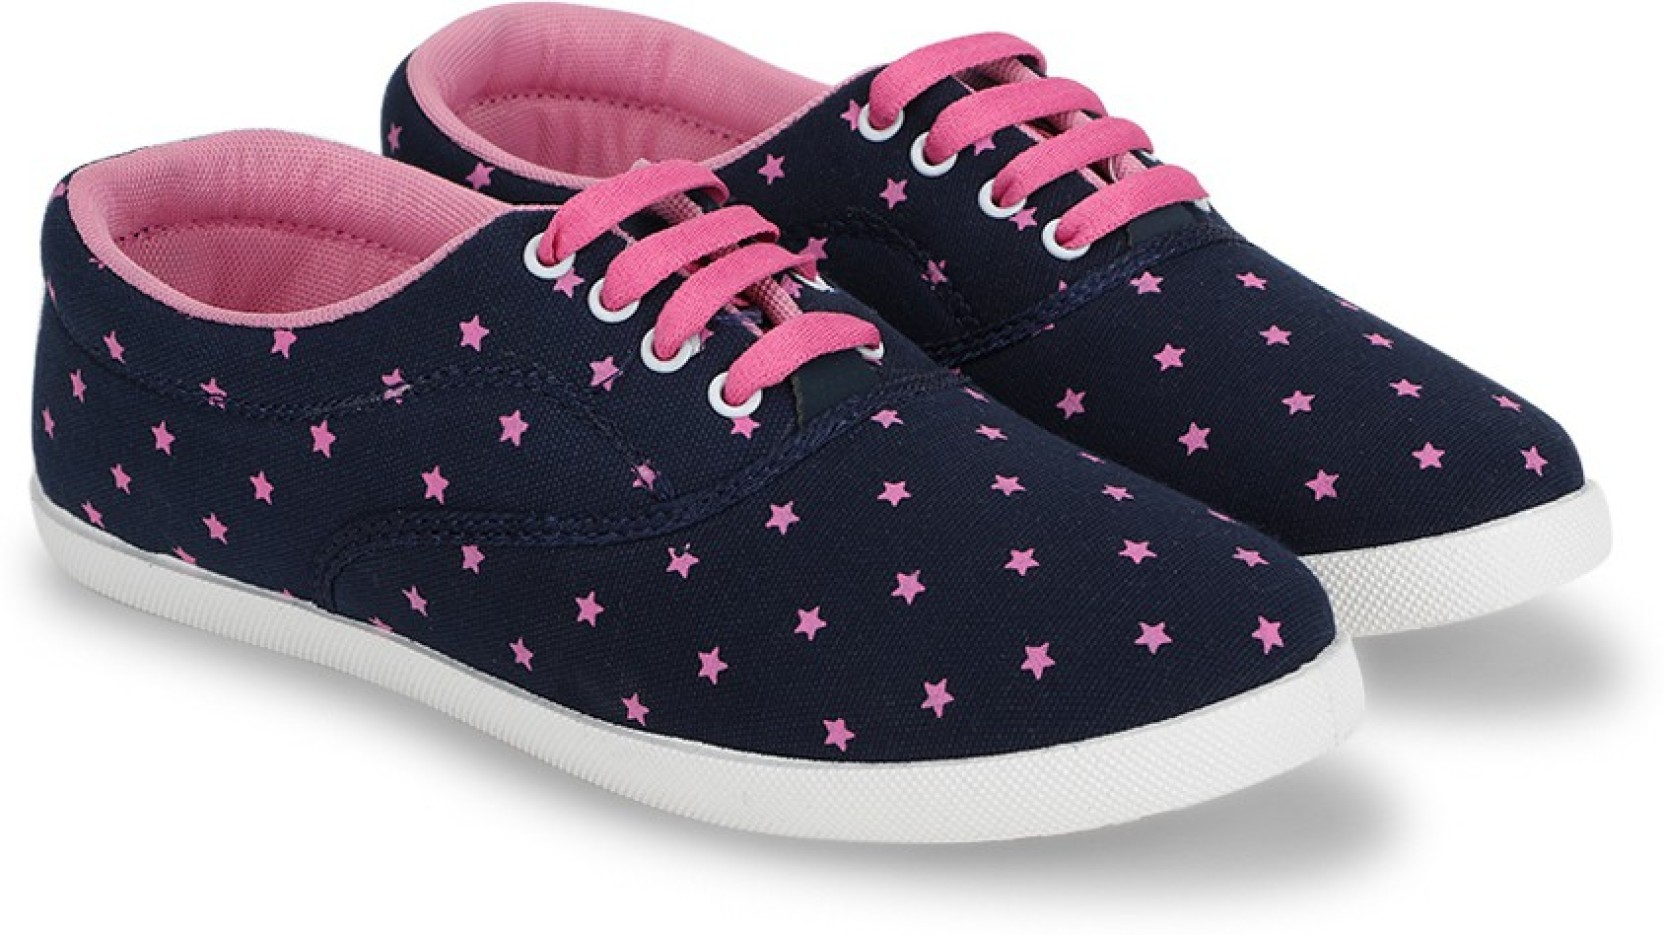 Compare Prices on School Girl Shoes- Online Shopping/Buy